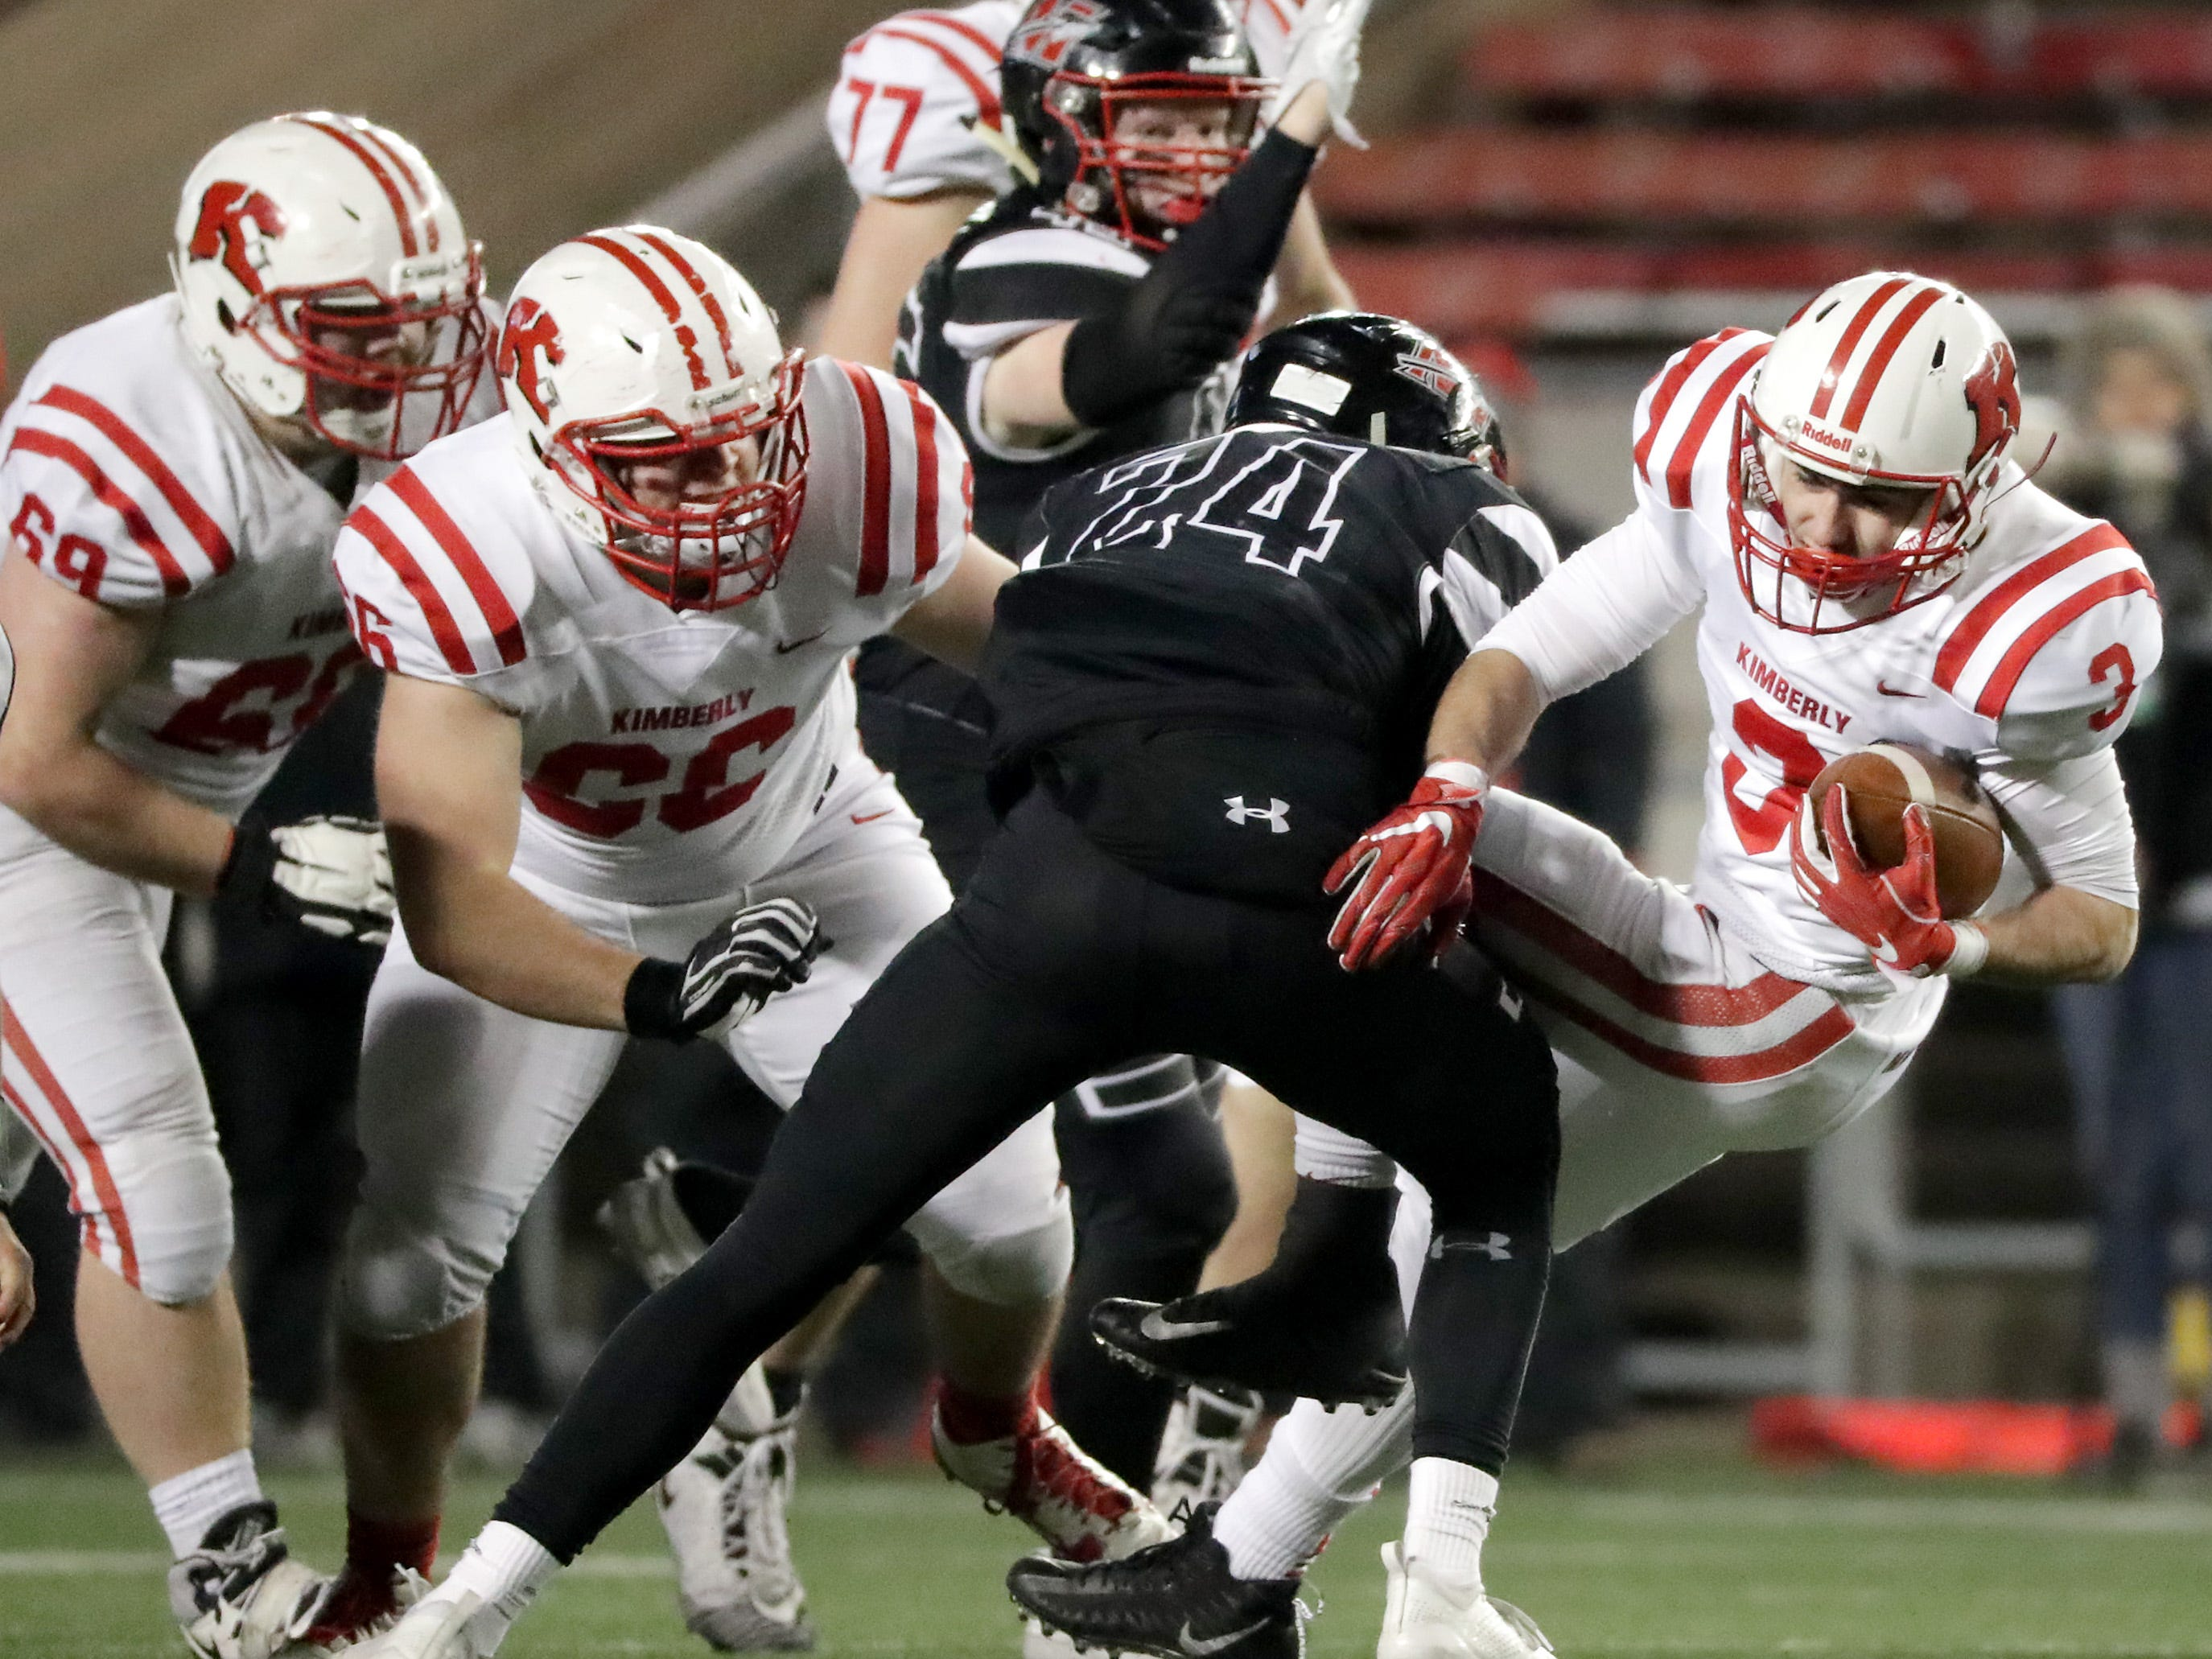 Kimberly High School 's #3 Alec Martzahl is tackled by Muskego High School's #24 Huntyer Wohler during the WIAA Division 1 state championship football game on Friday, November 16, 2018, at Camp Randall in Madison, Wis.